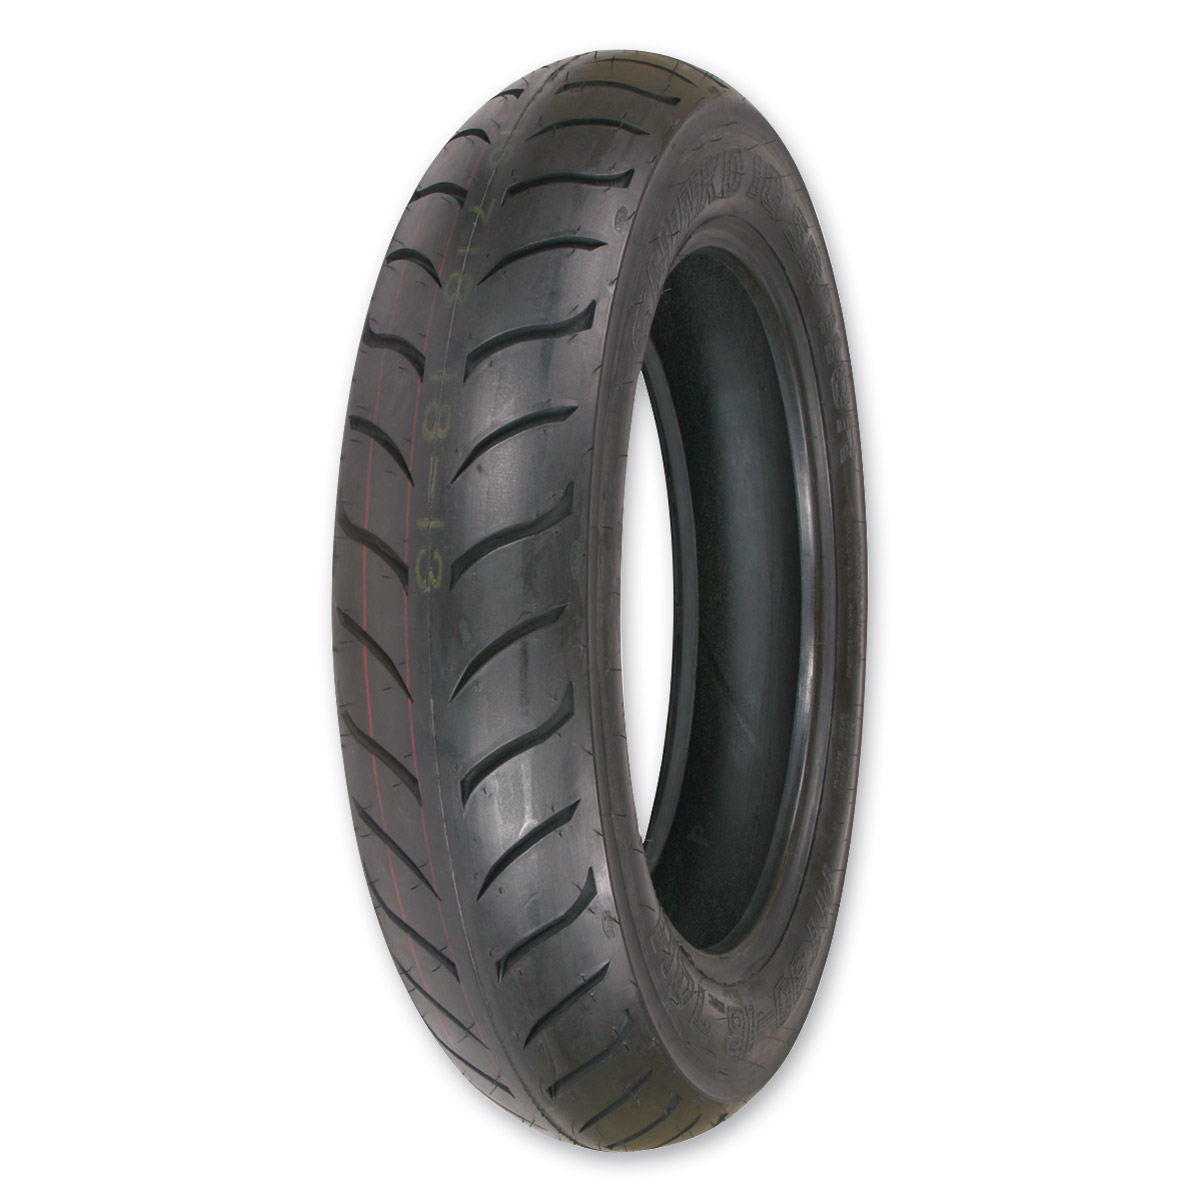 Shinko 718 MT90-16 Rear Tire